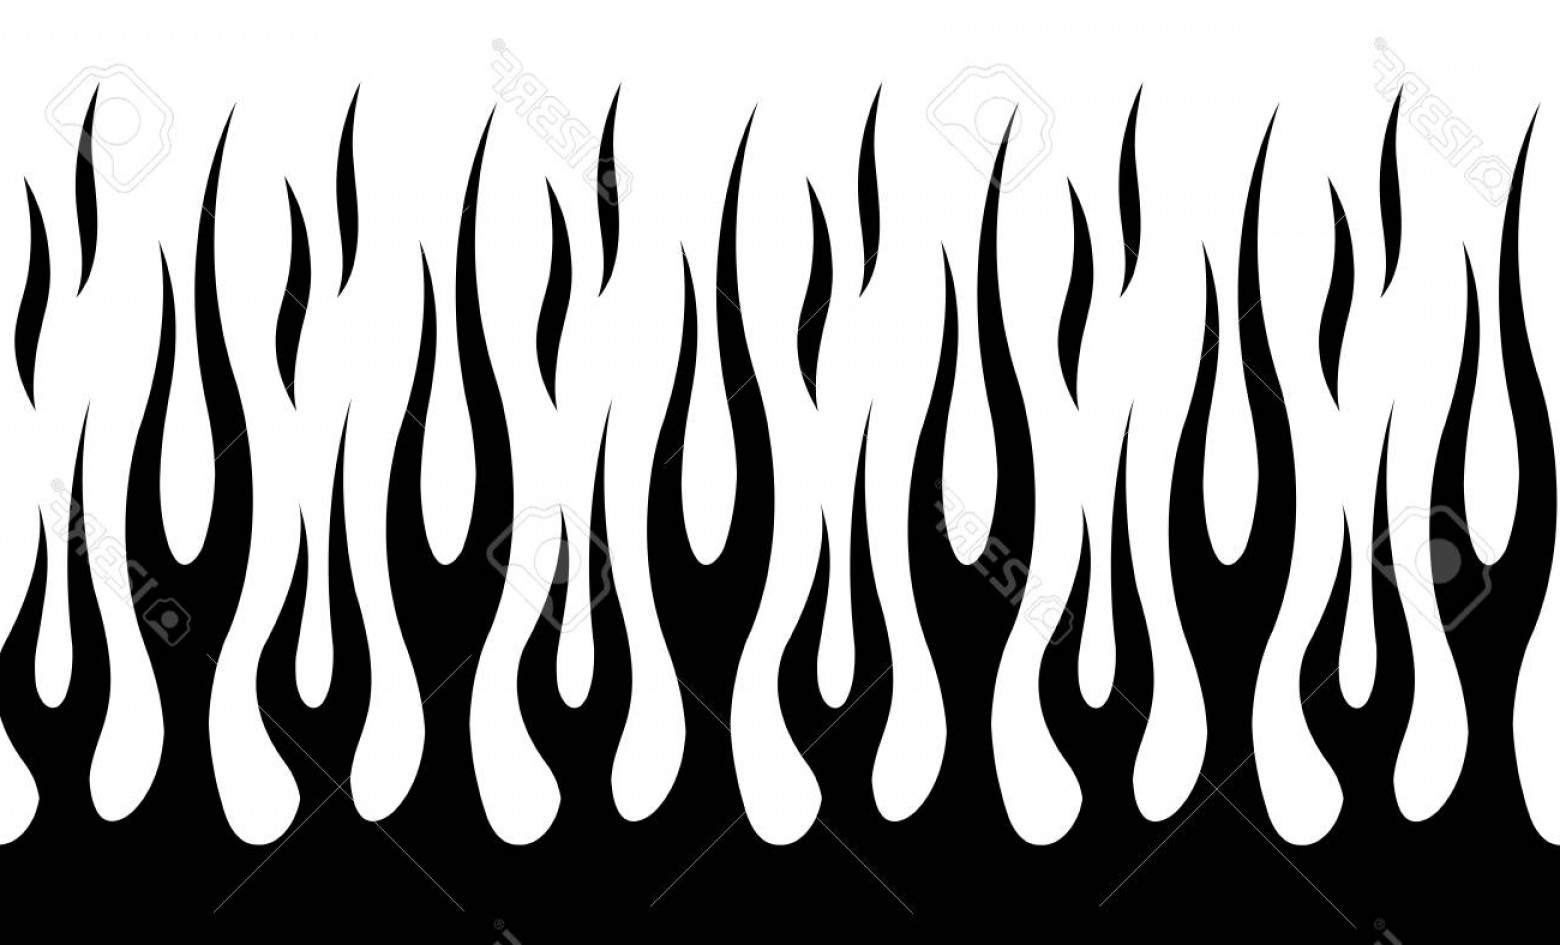 Tribal Flames Vector Car: Photostock Vector Classic Tribal Hotrod Muscle Car Flame Pattern Can Be Used As Decals Or Even Tattoos Too